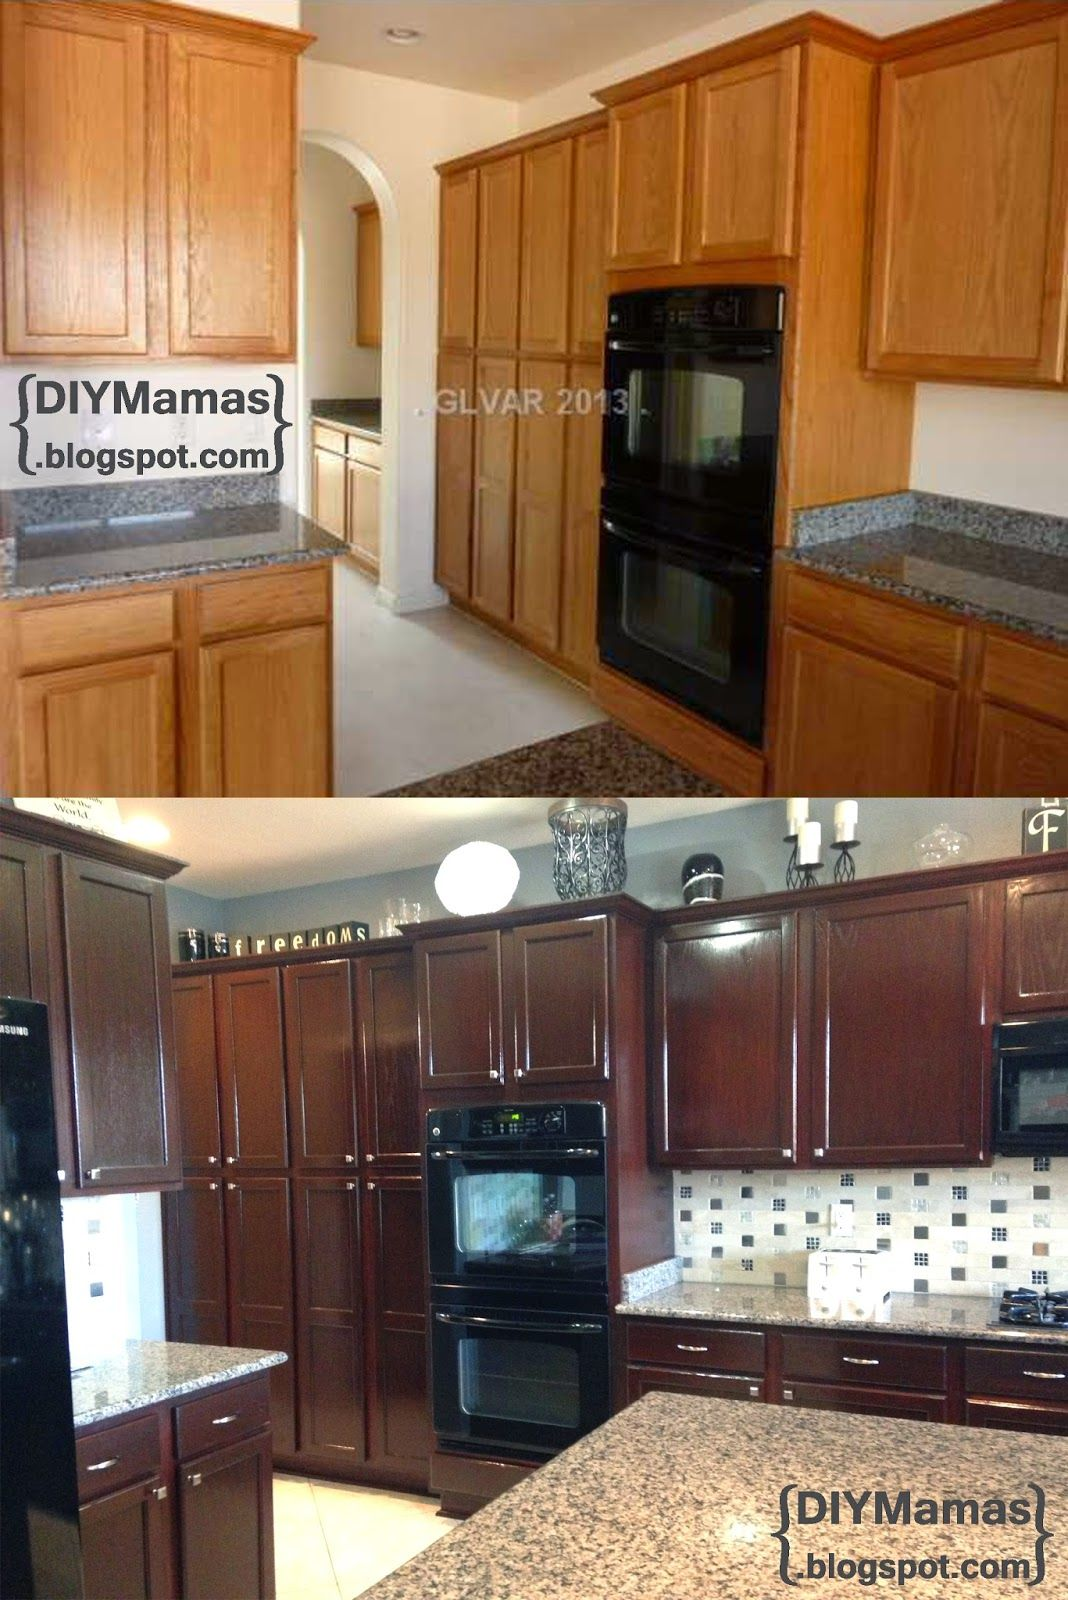 Kitchen Makeover Gel Stain Backsplash Hardware Apron Sink Tiled Floor Stained Kitchen Cabinets Staining Cabinets Kitchen Cabinets Makeover